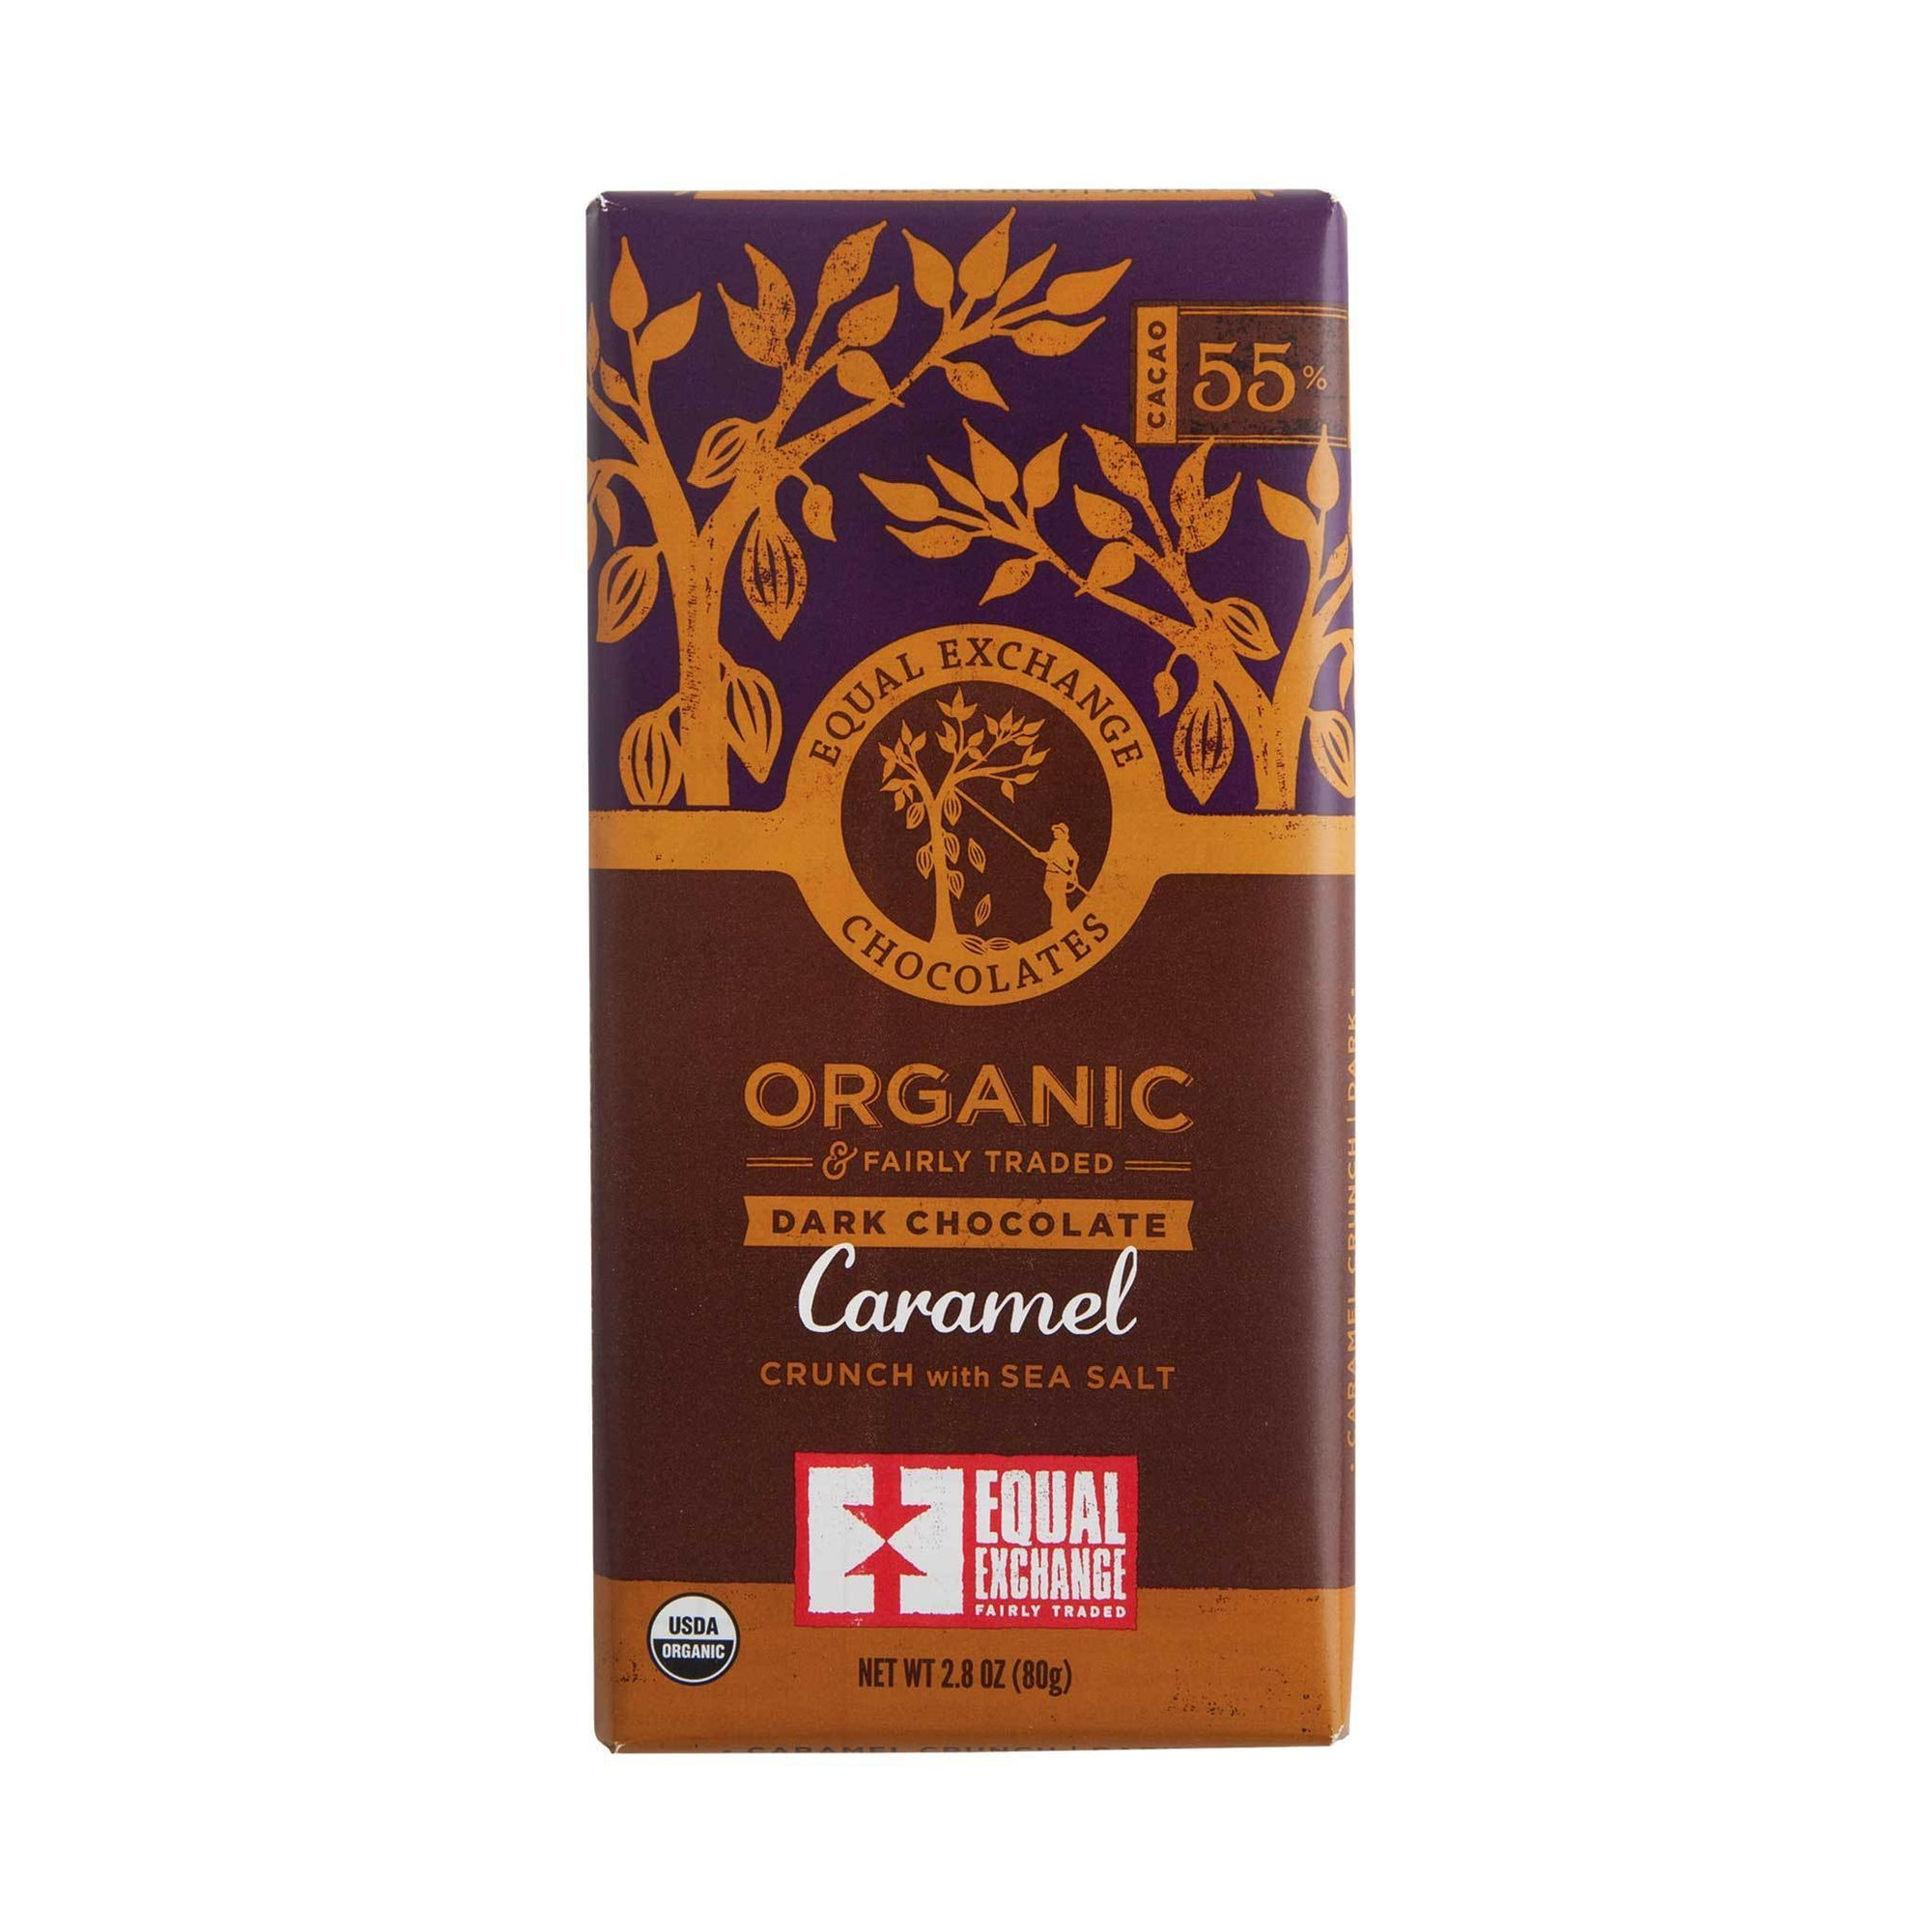 Caramel Crunch with Sea Salt Organic Dark Chocolate - Equal Exchange - 2.8 oz